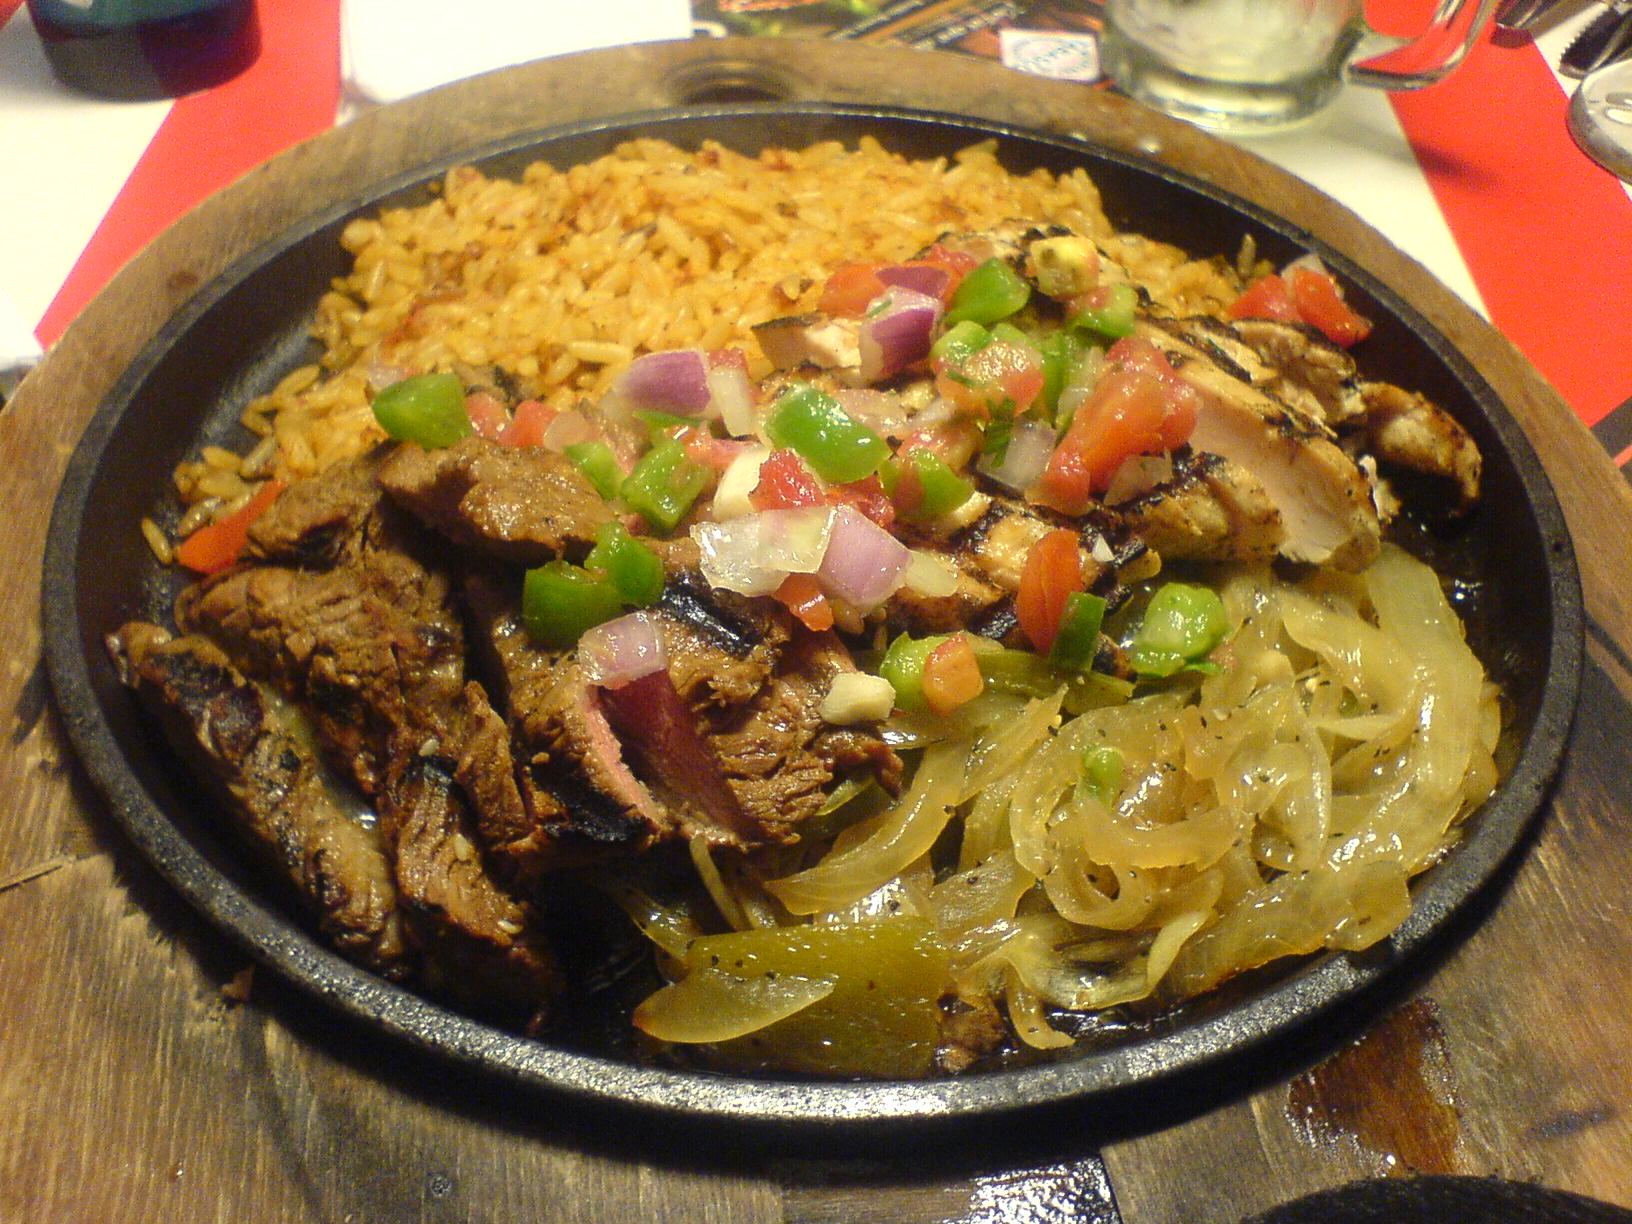 ... :Flickr elisart 324248450--Beef and chicken fajitas.jpg - Wikipedia